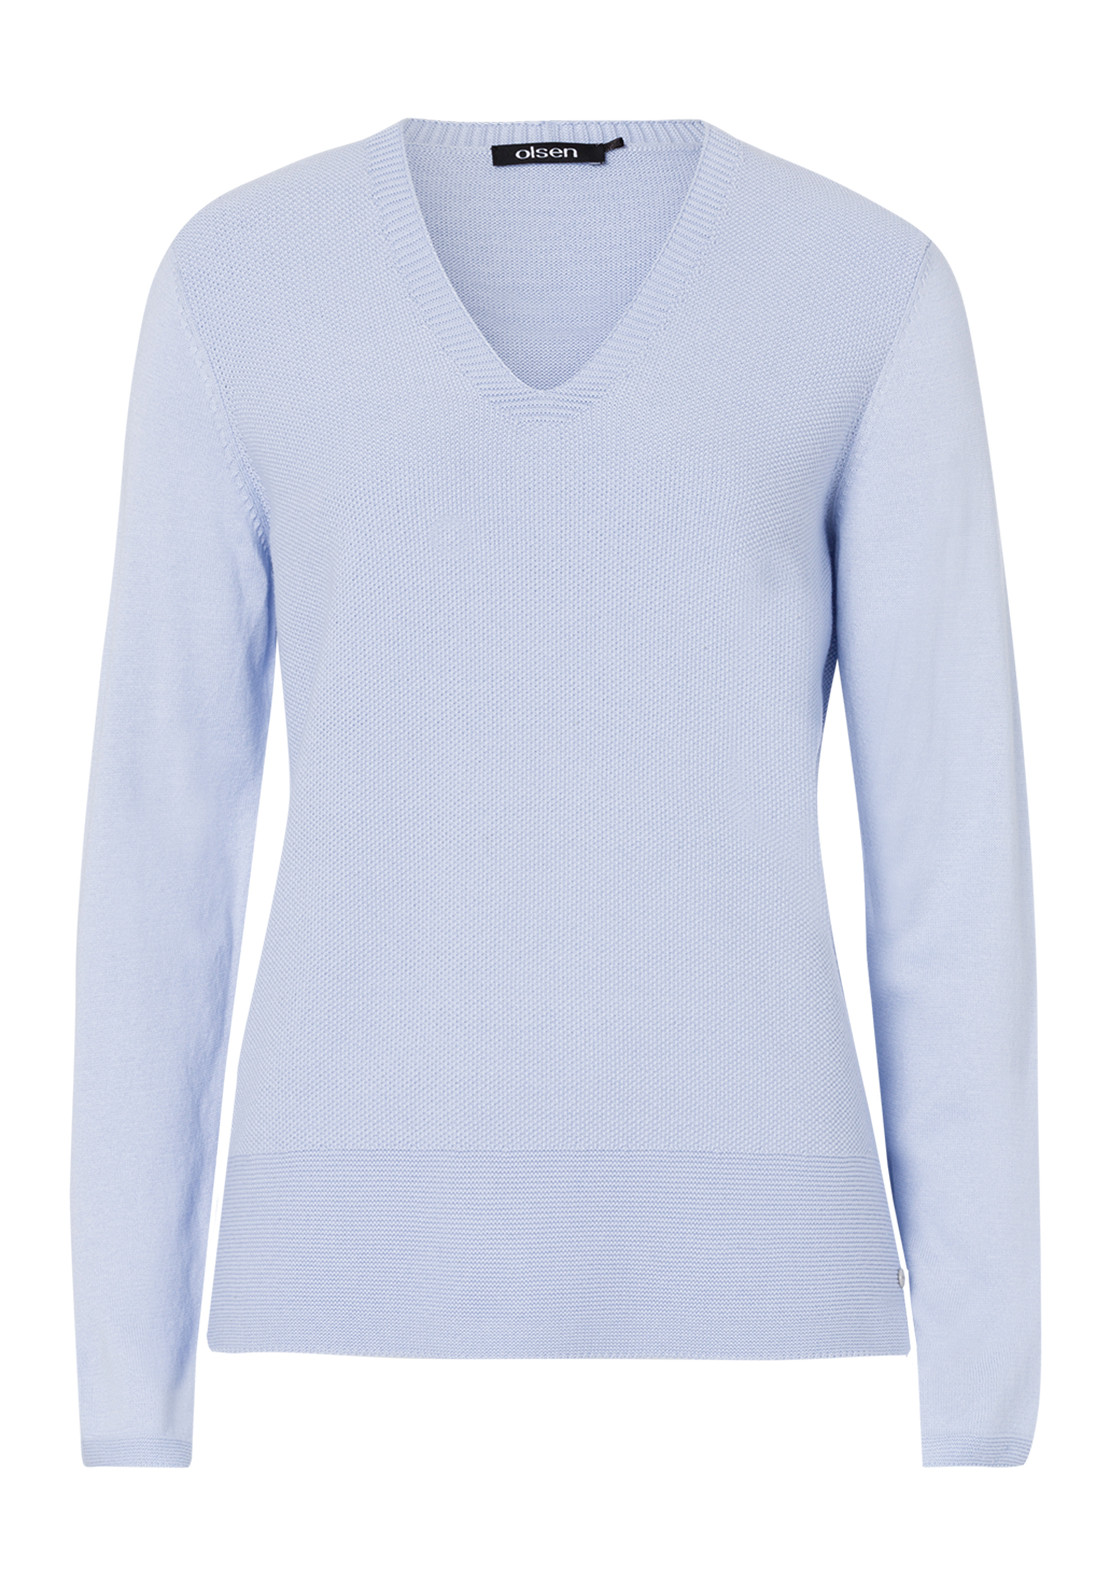 Olsen Cotton Blend V-Neck Sweater Jumper, Pale Blue